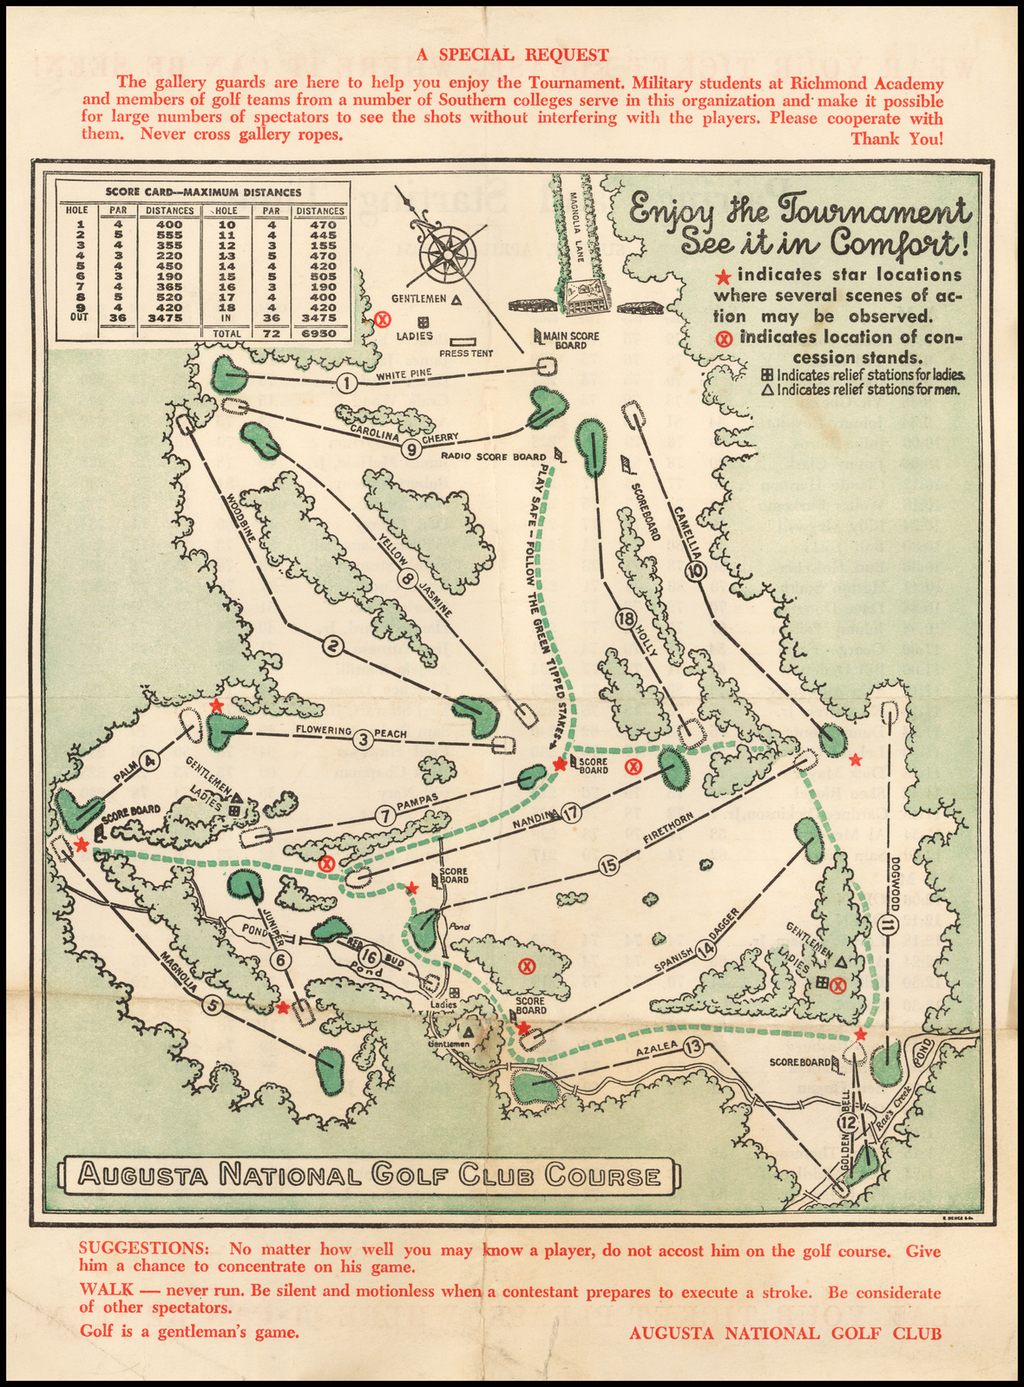 Augusta National Golf Club Course - Barry Lawrence Ruderman Antique on st george georgia map, georgia road map, springfield georgia map, ft gaines georgia map, arlington georgia map, warm springs georgia map, augusta ga, columbus georgia map, stockton georgia map, st. mary's georgia map, albany georgia map, macon georgia map, chattanooga georgia map, etowah indian mounds georgia map, milledgeville georgia map, savannah georgia map, marietta georgia map, louisville georgia map, concord georgia map, atlanta georgia map,